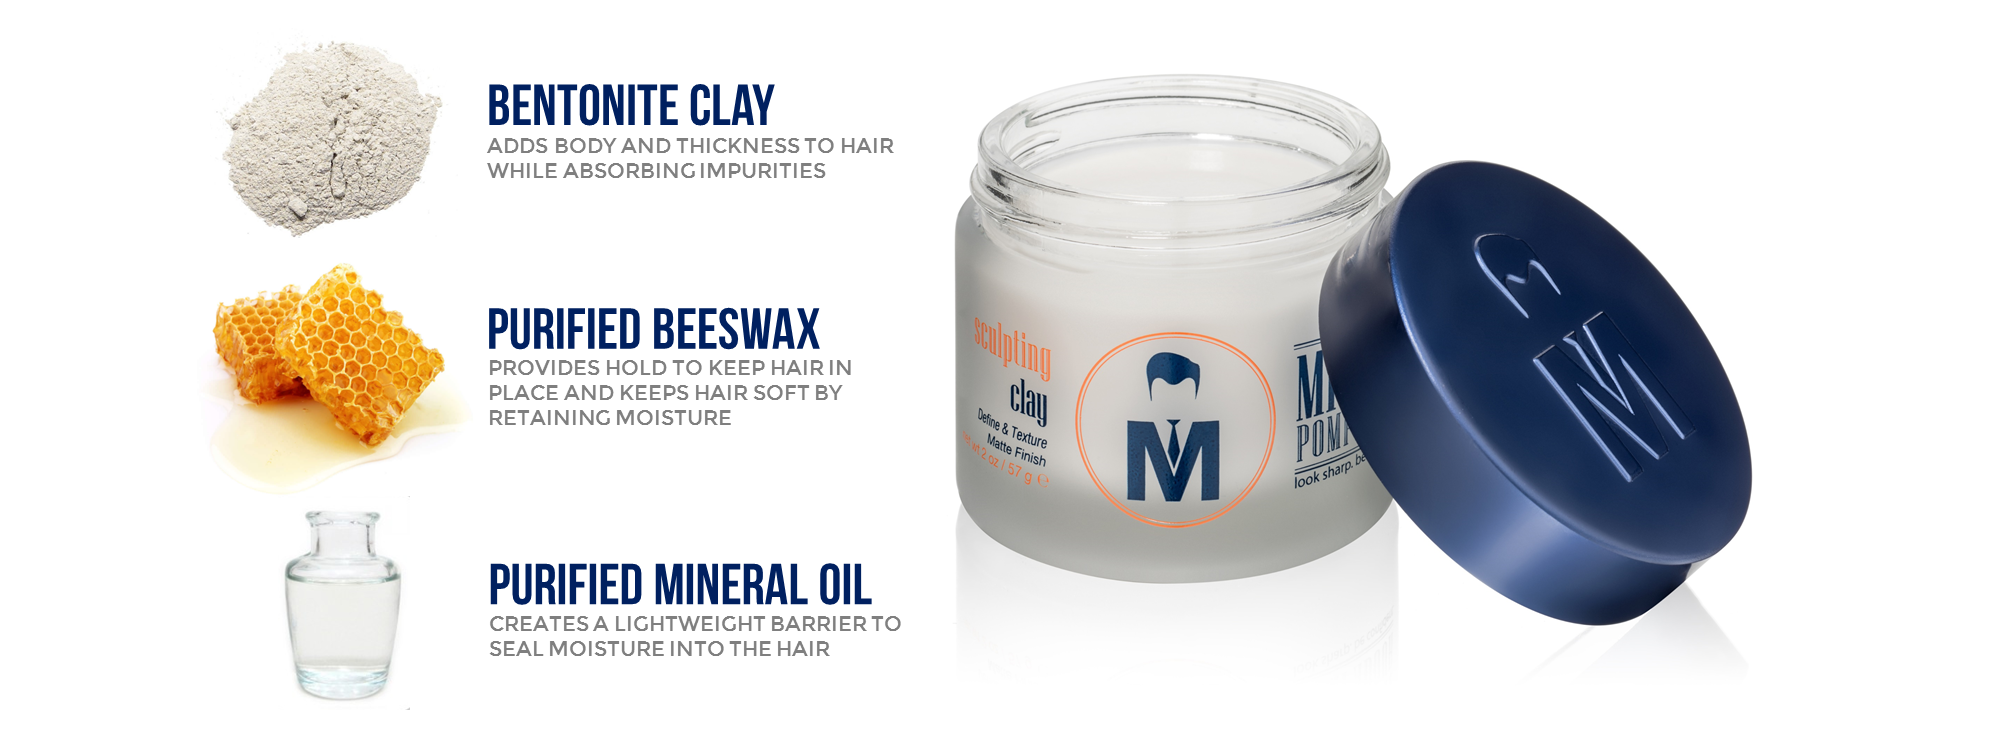 Bentonite Clay adds body and thickness to the hair while absorbing impurities. Natural Purified Beeswax provides hold to keep hairstyle in place and keeps hair soft by retaining moisture.  Purified mineral oil creates a lightweight barrier to seal moisture into the hair.  Made with premium ingredients.  No parabens, alcohol, or sodium chloride. Water based and easy to wash out.  Comes in sustainable glass jar with metal lid.